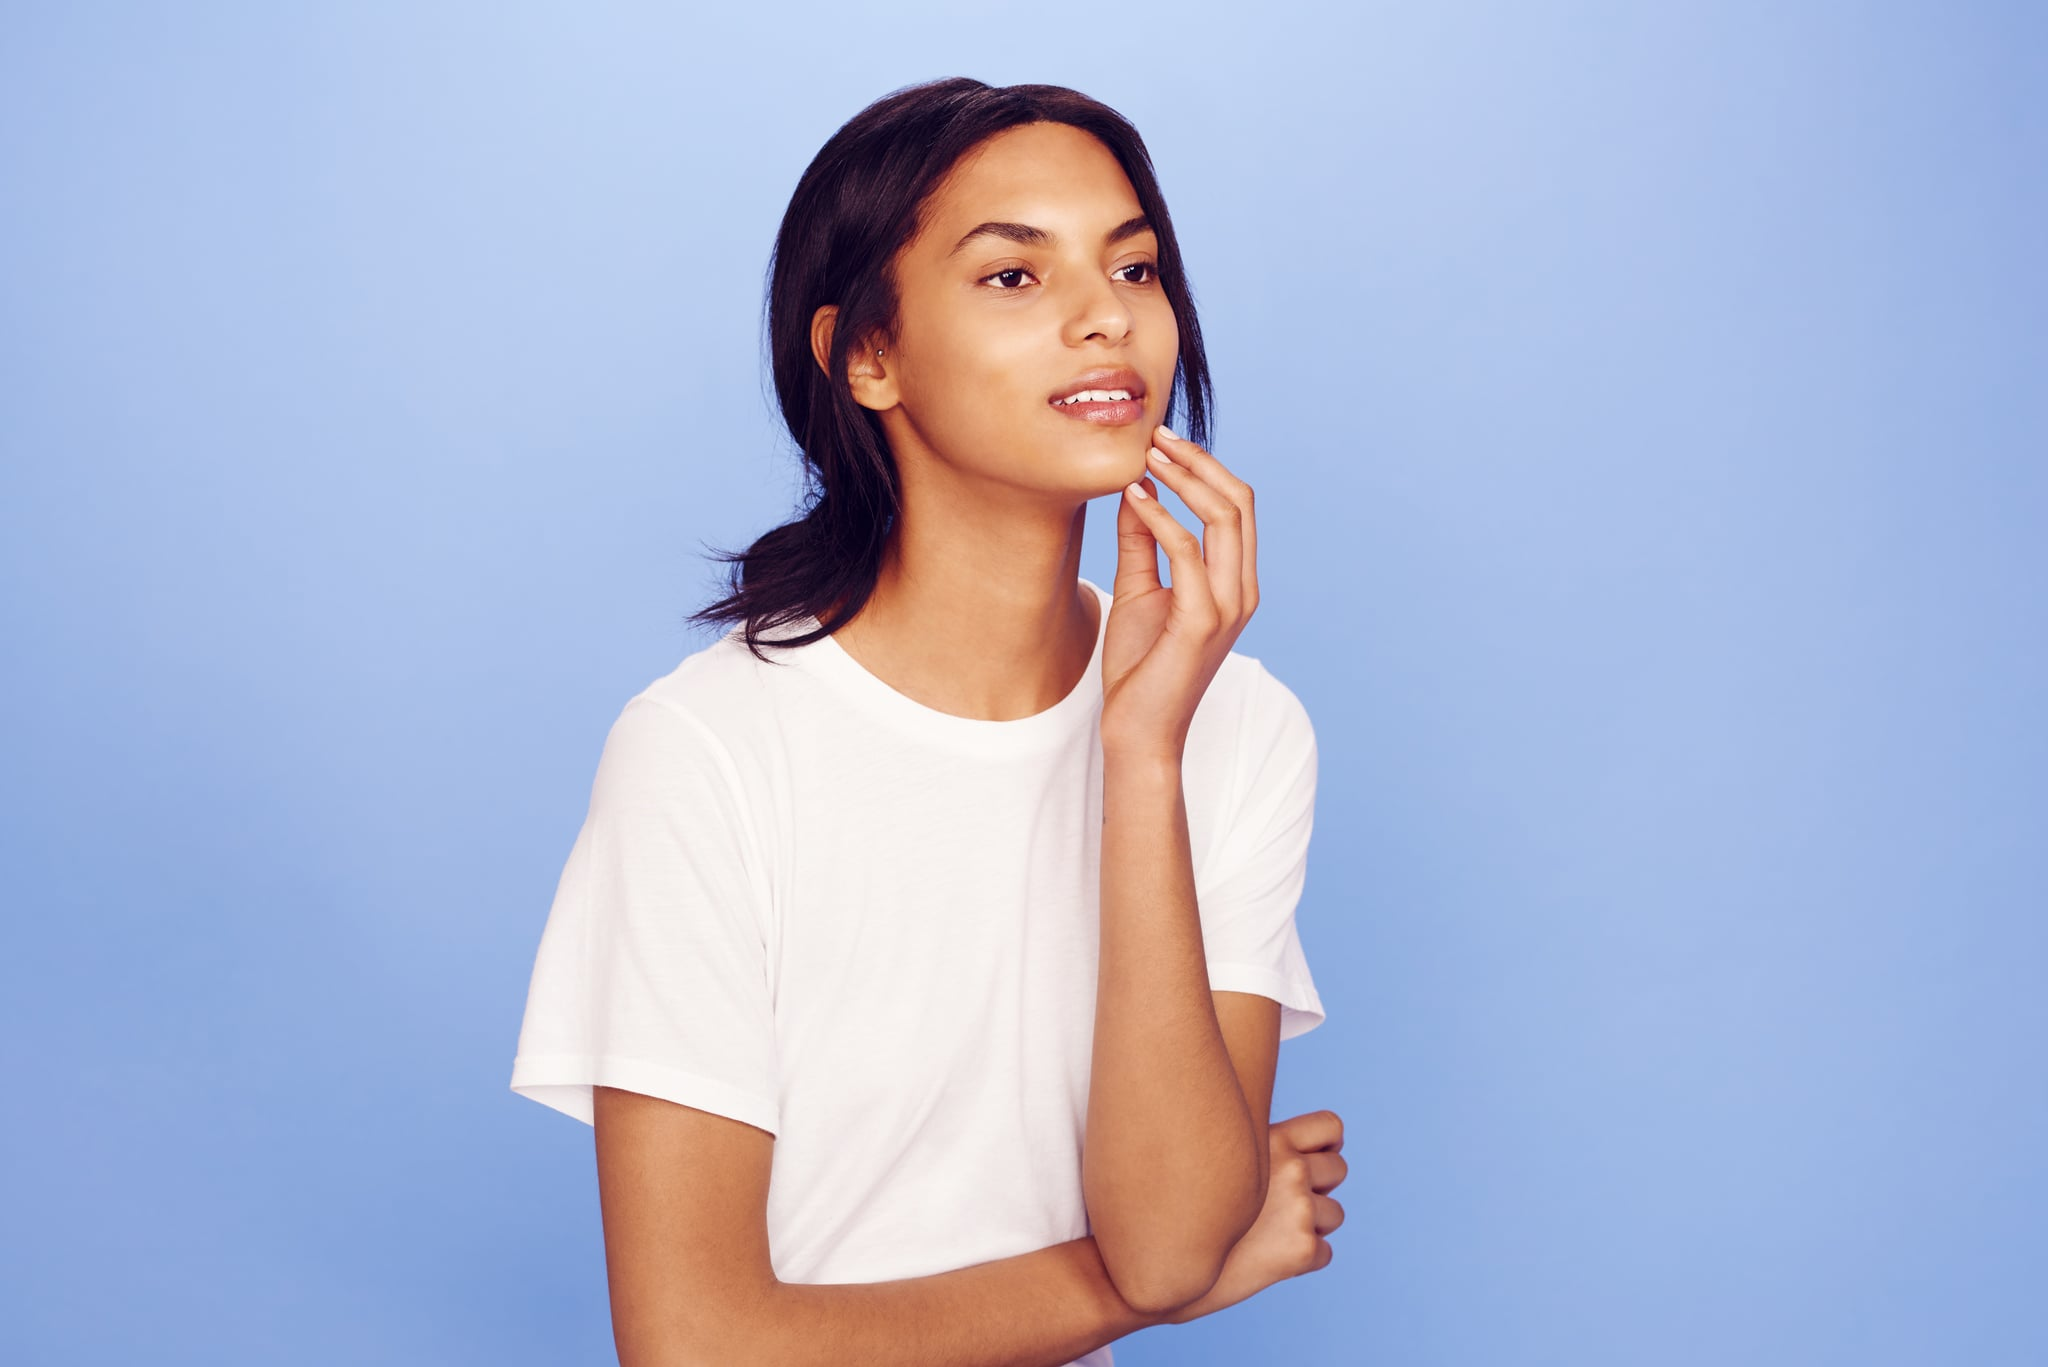 How to Stop Picking Your Skin | POPSUGAR Beauty